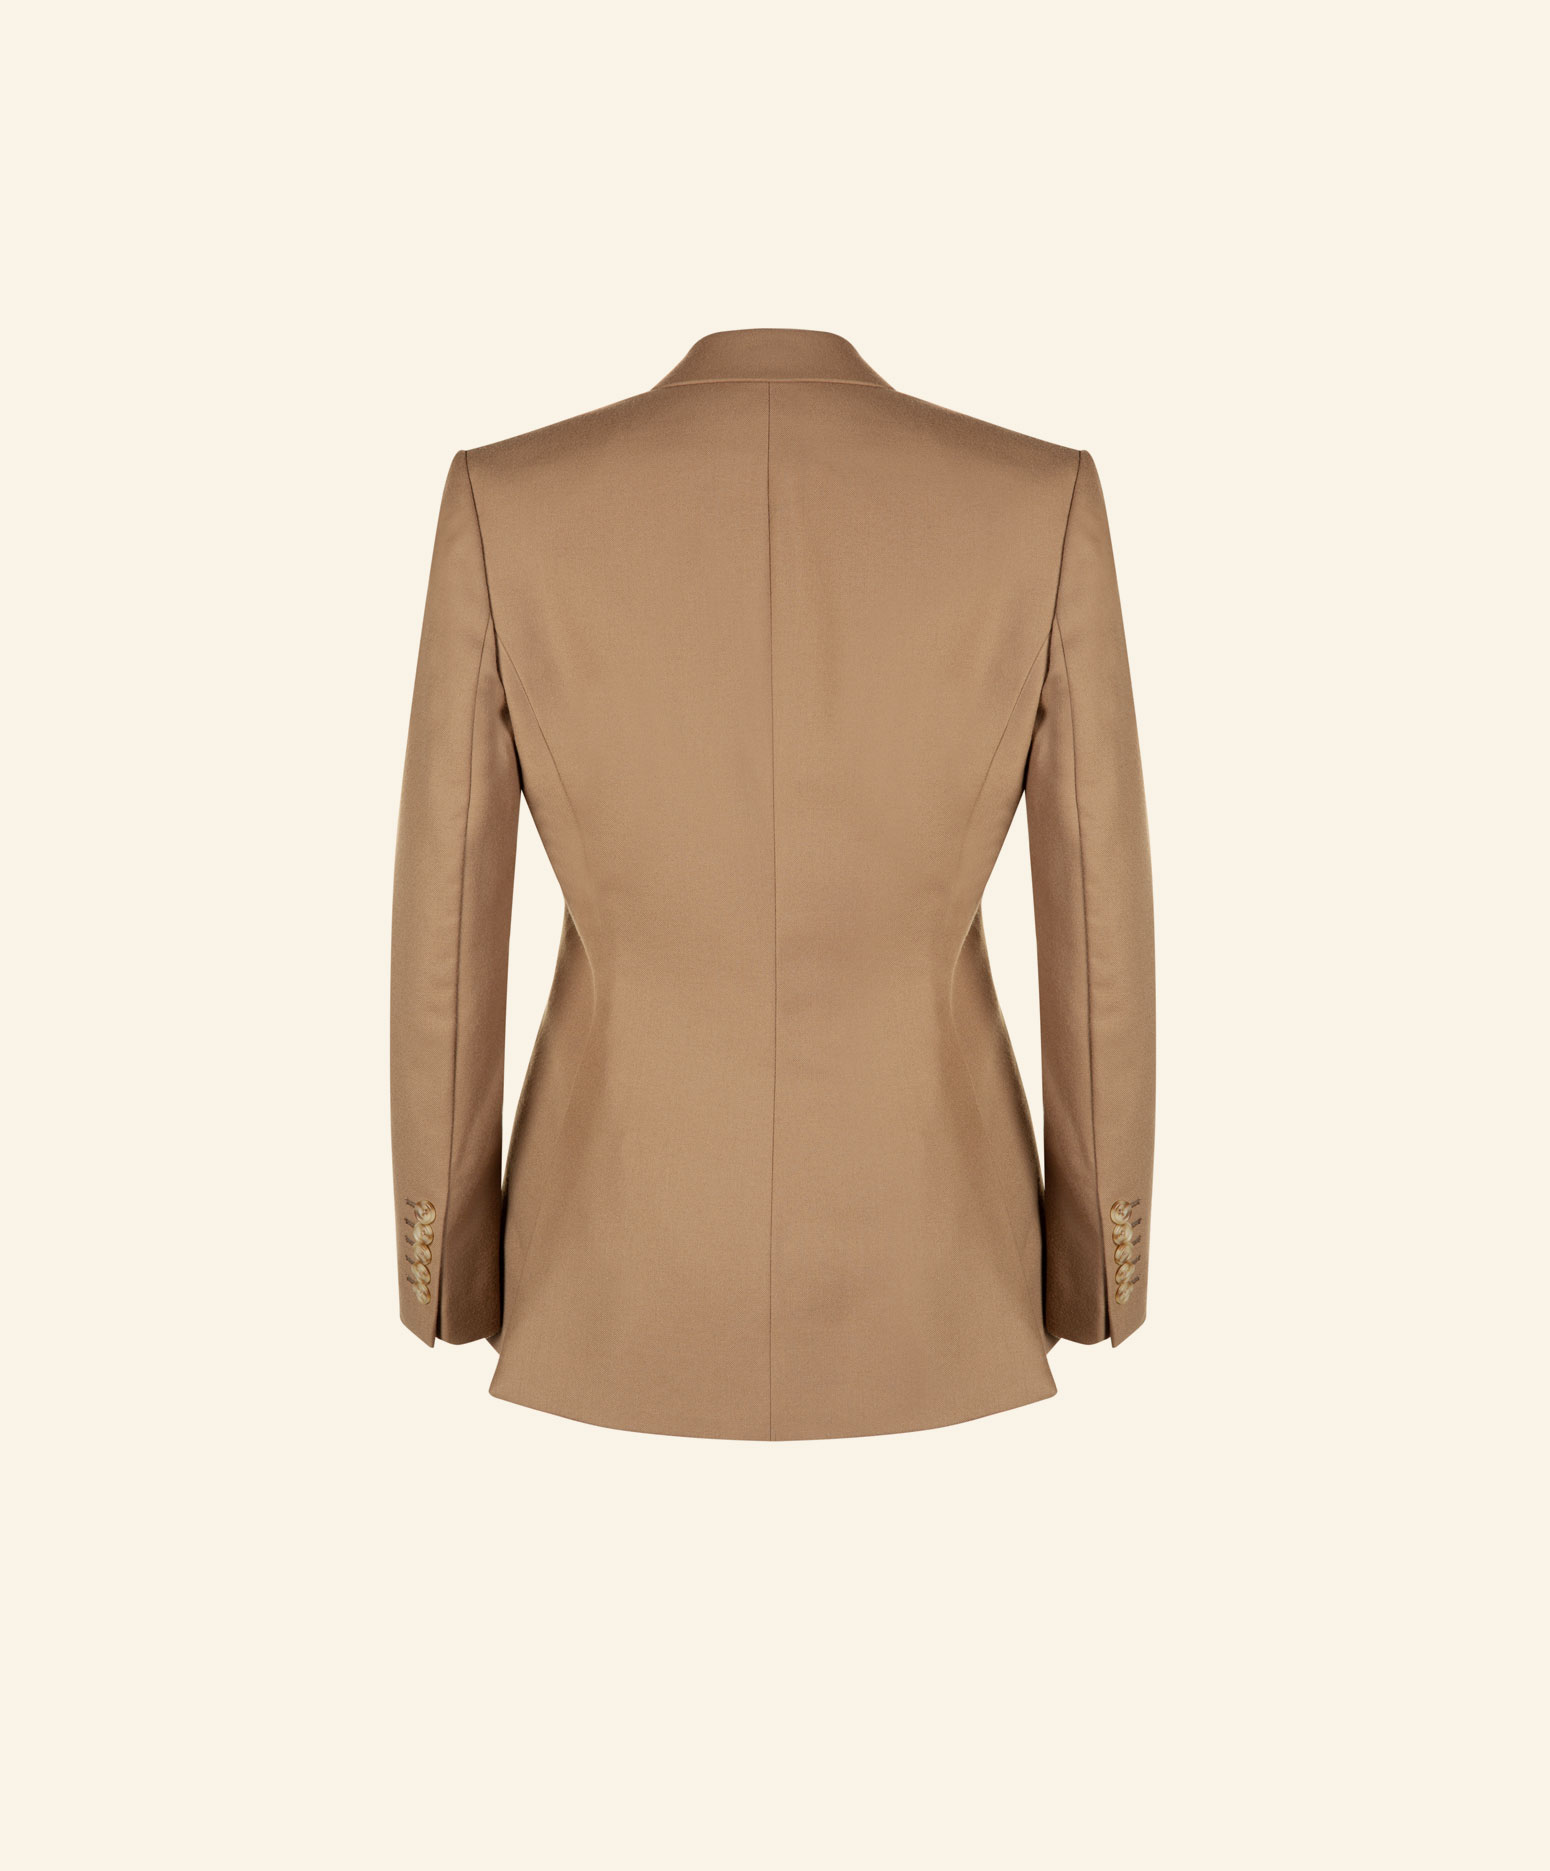 https://www.sannelondon.com/wp-content/uploads/2019/06/brown-jacket-back.jpg